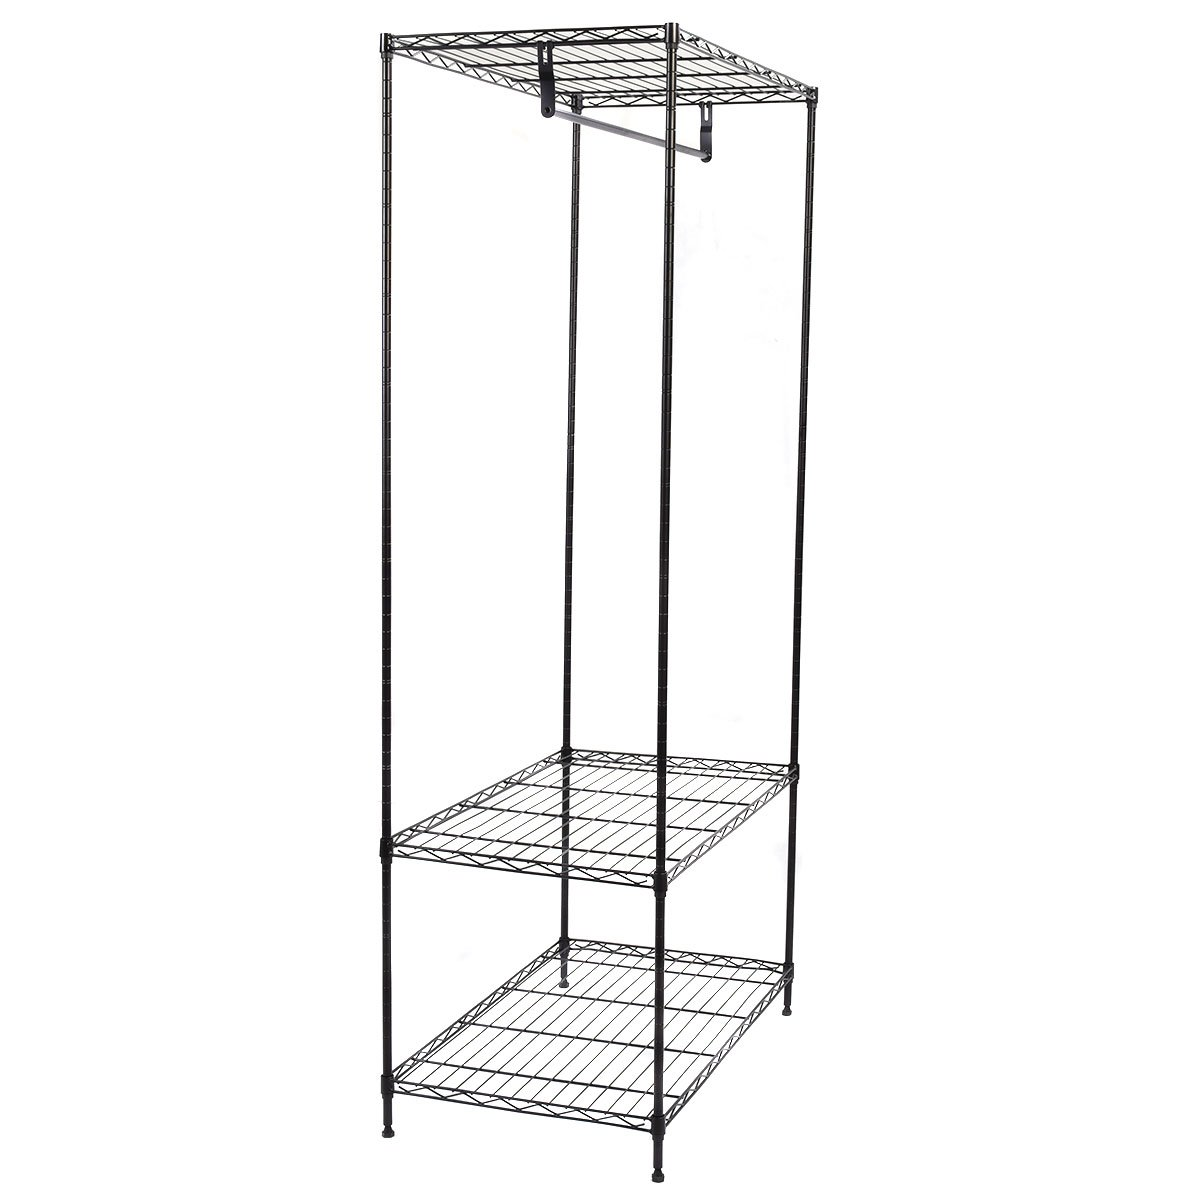 3-Tier Clothing Garment Rack Hanger Shelving Wire Shelf Dress Portable Wardrobe New